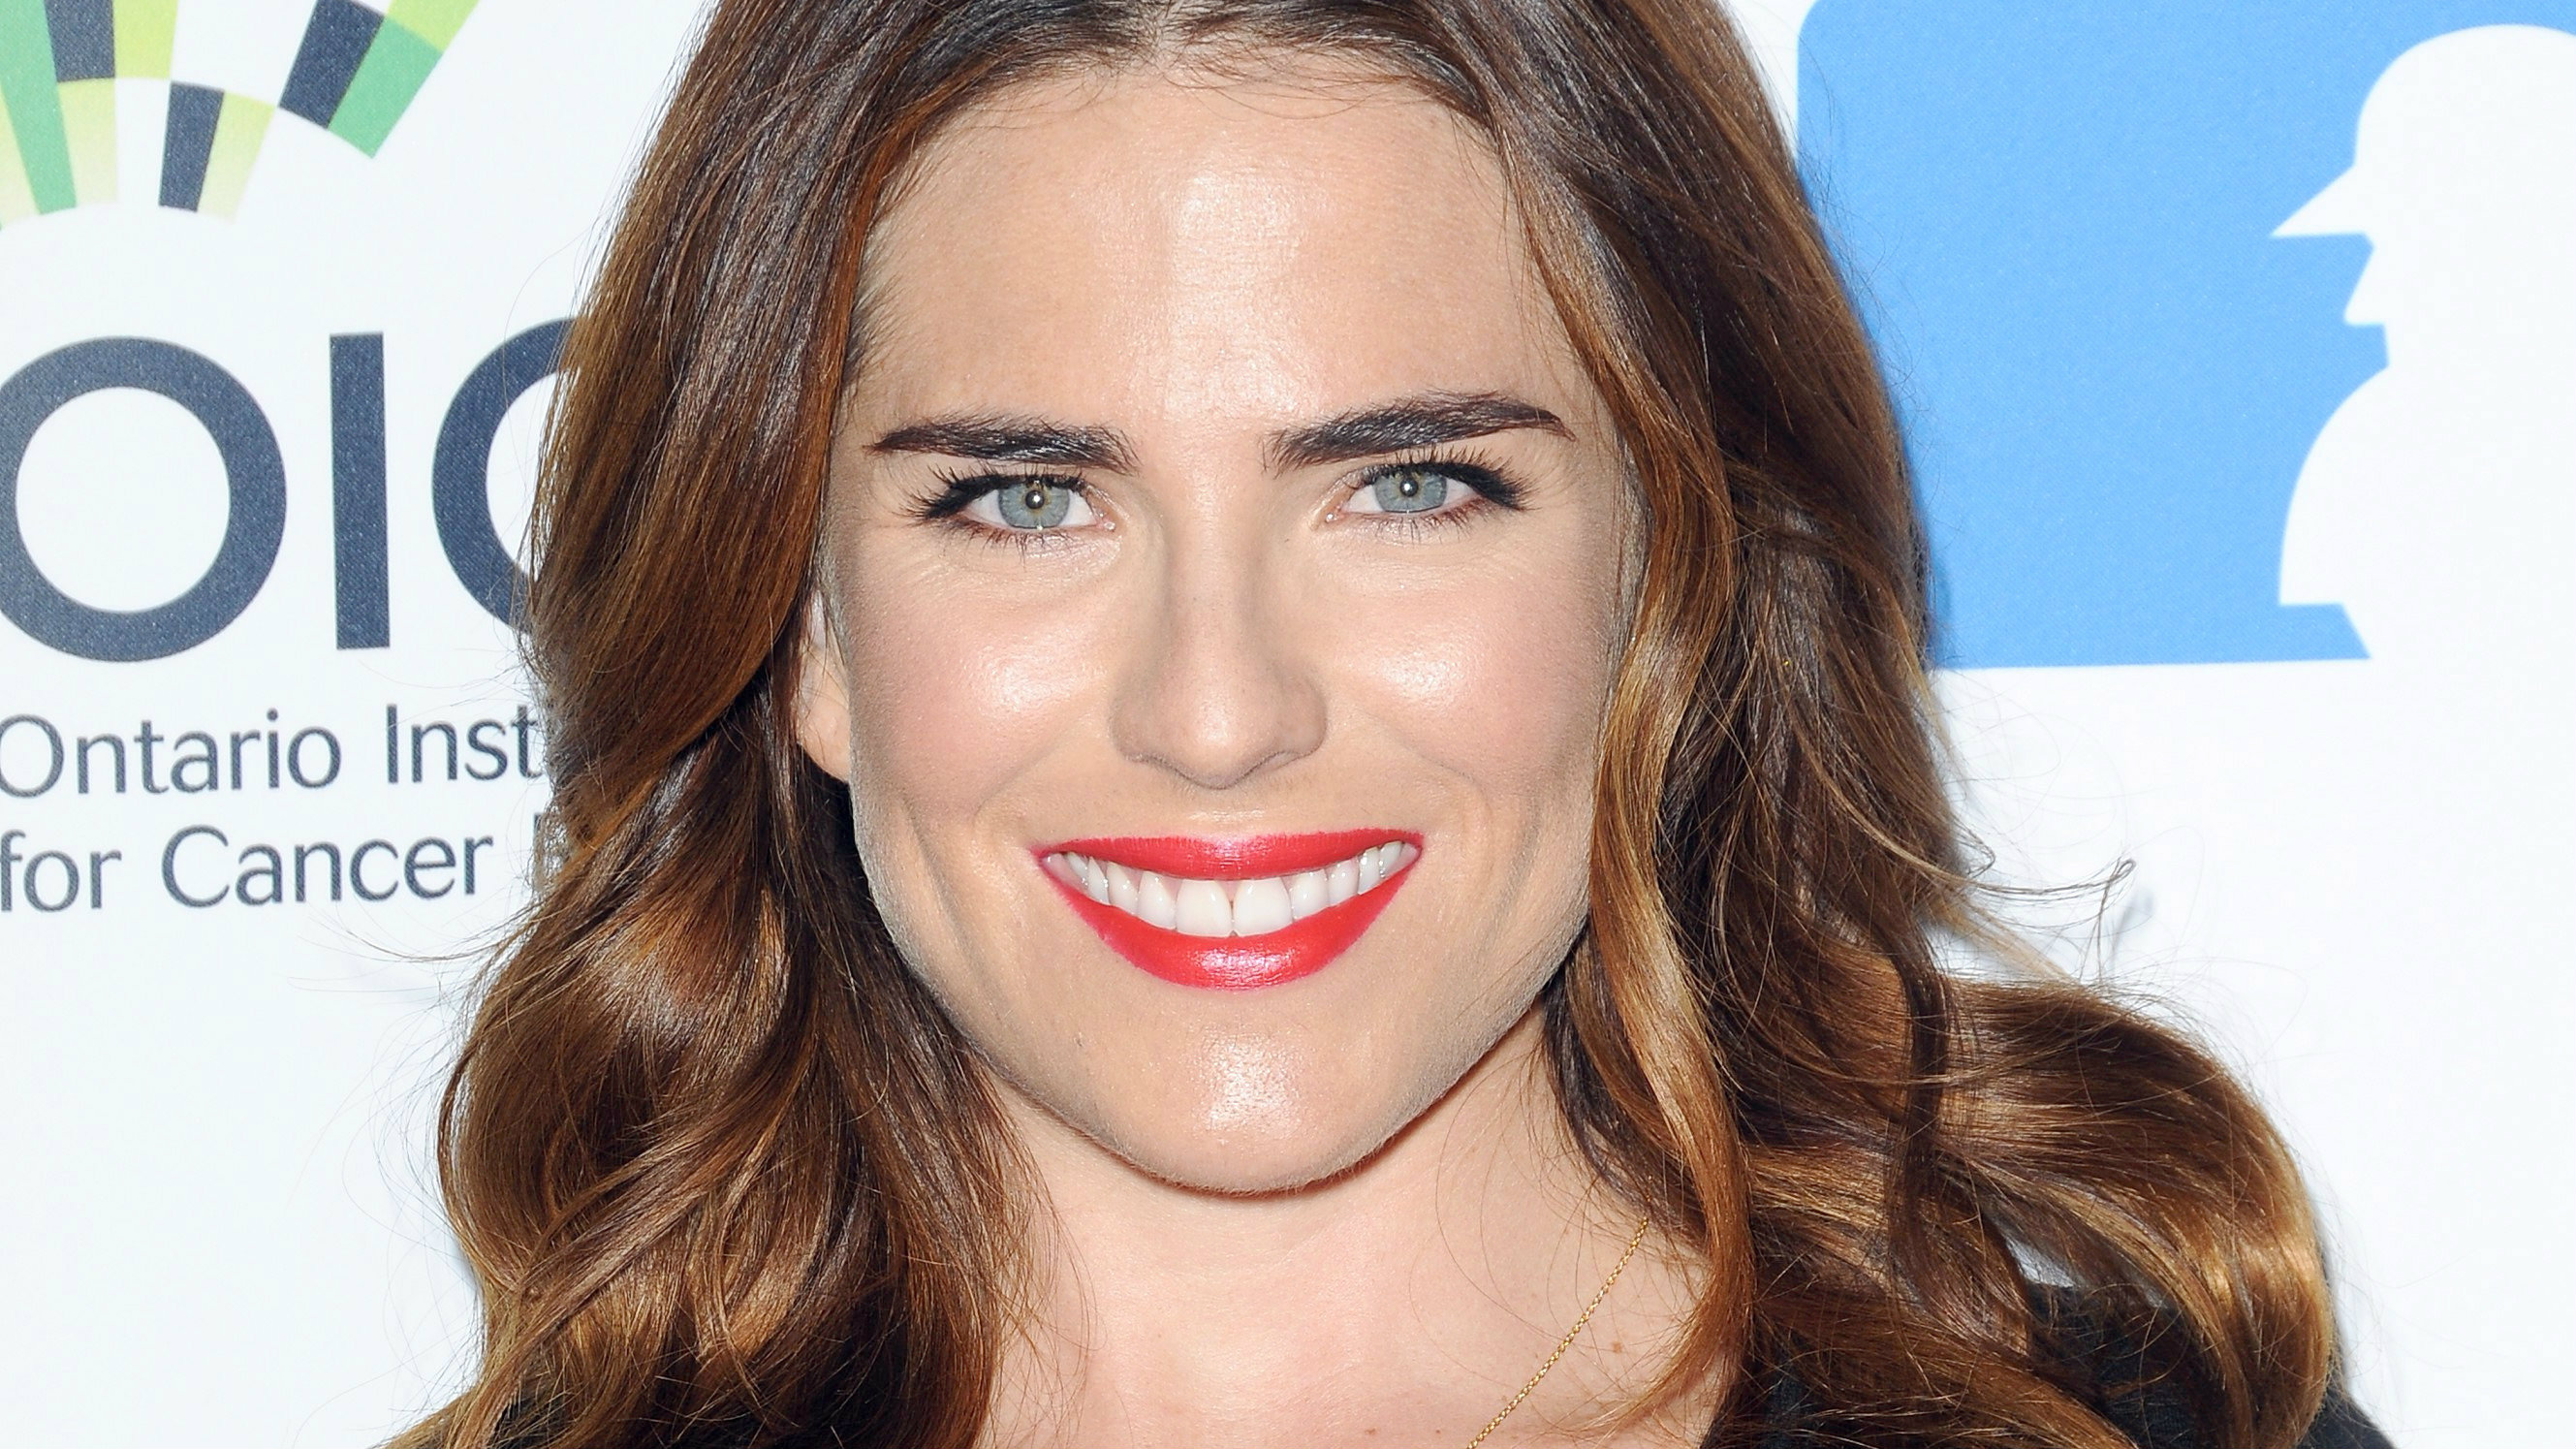 http://www.elgrafico.mx/sites/default/files/2016/11/21/karla_souza_desnuda.jpg